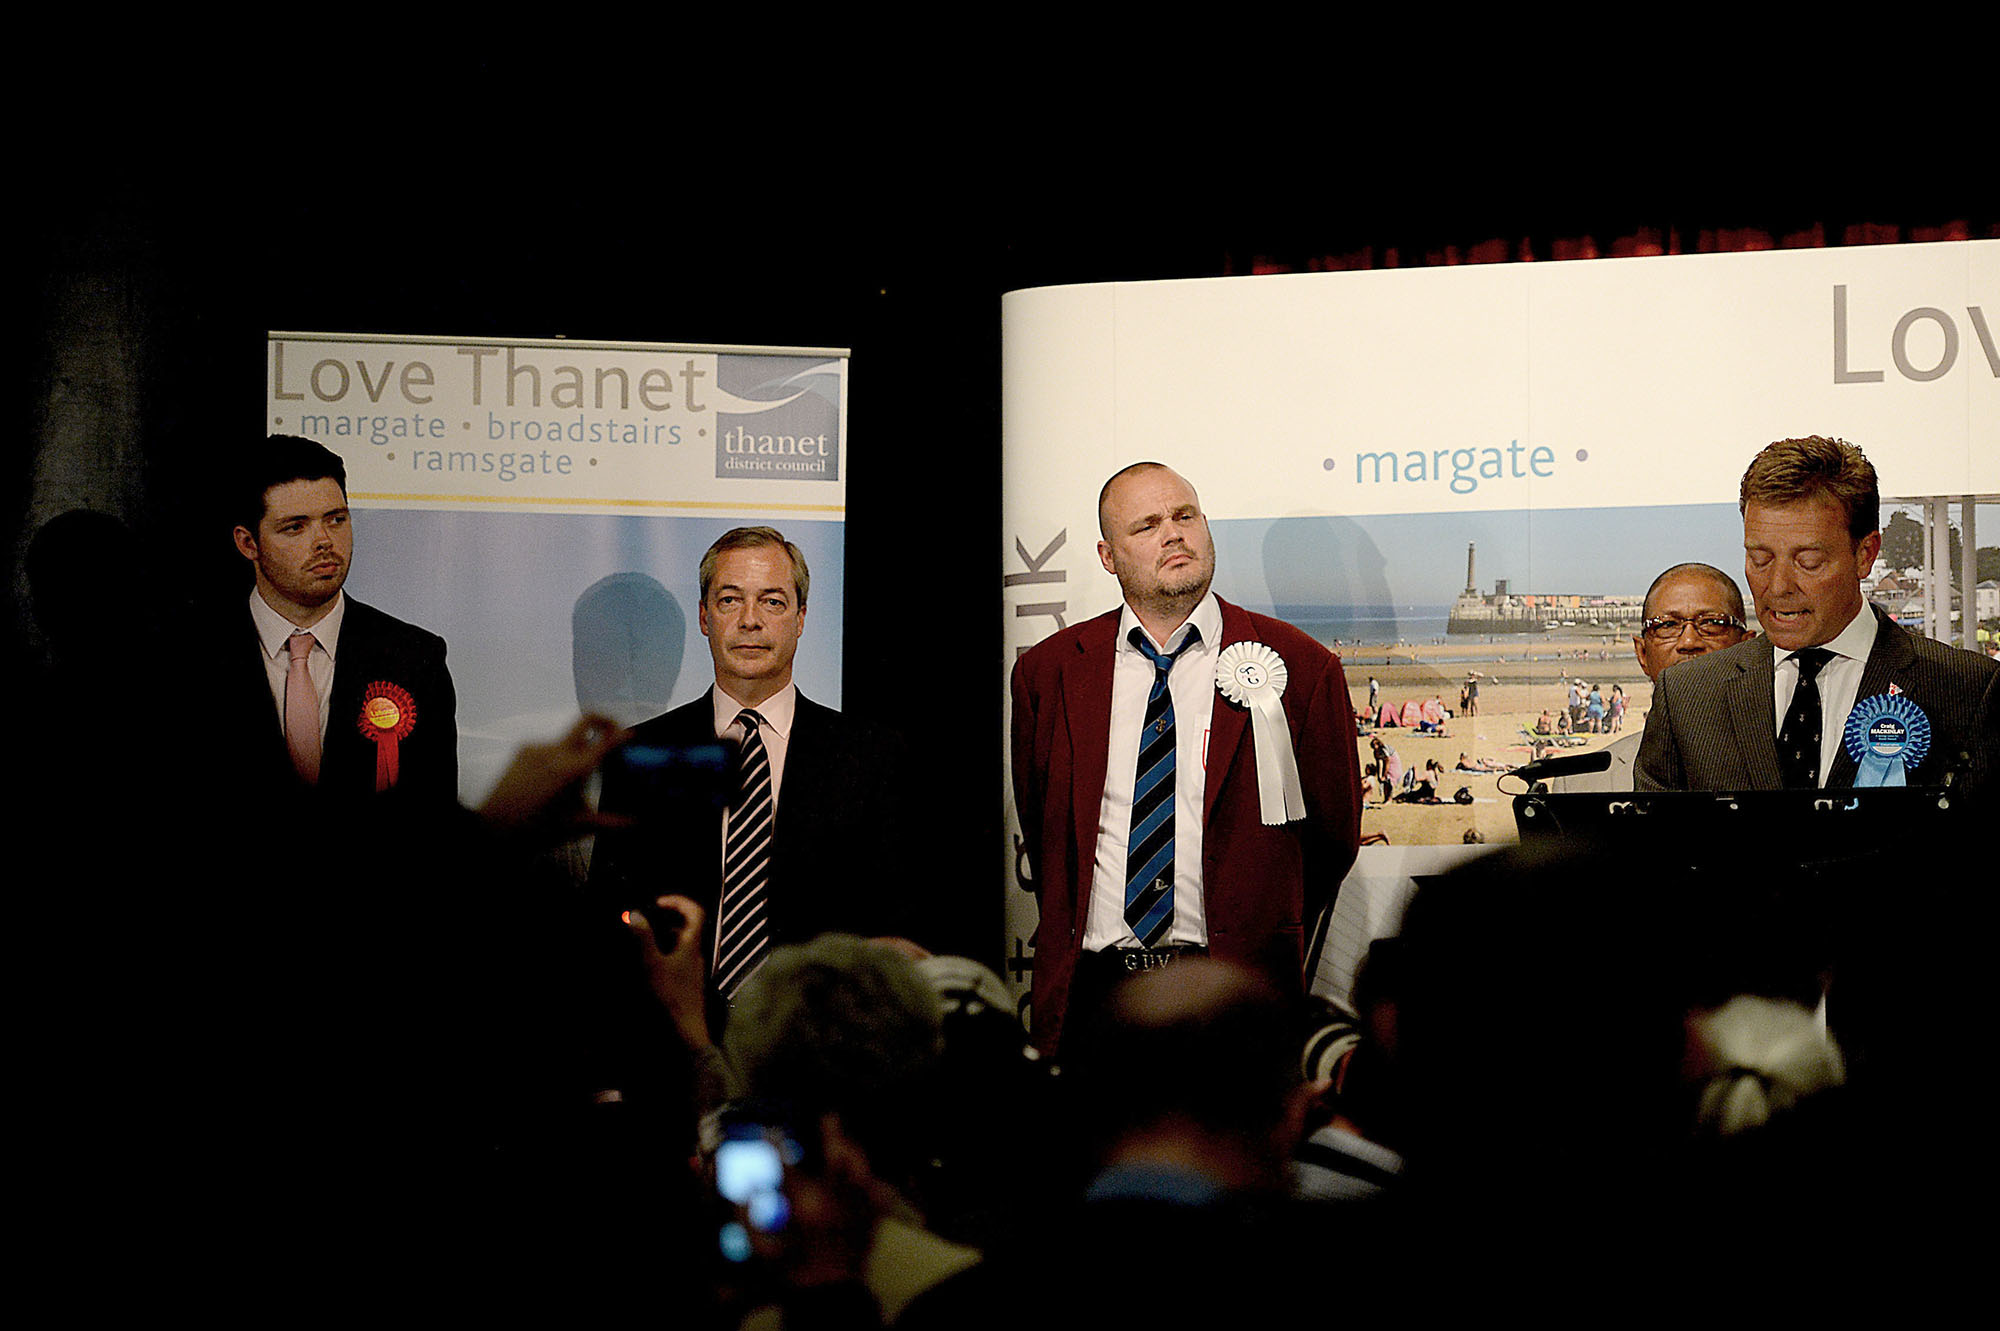 On stage at the Winter Gardens as the South Thanet election results are revealed, May 8th 2015